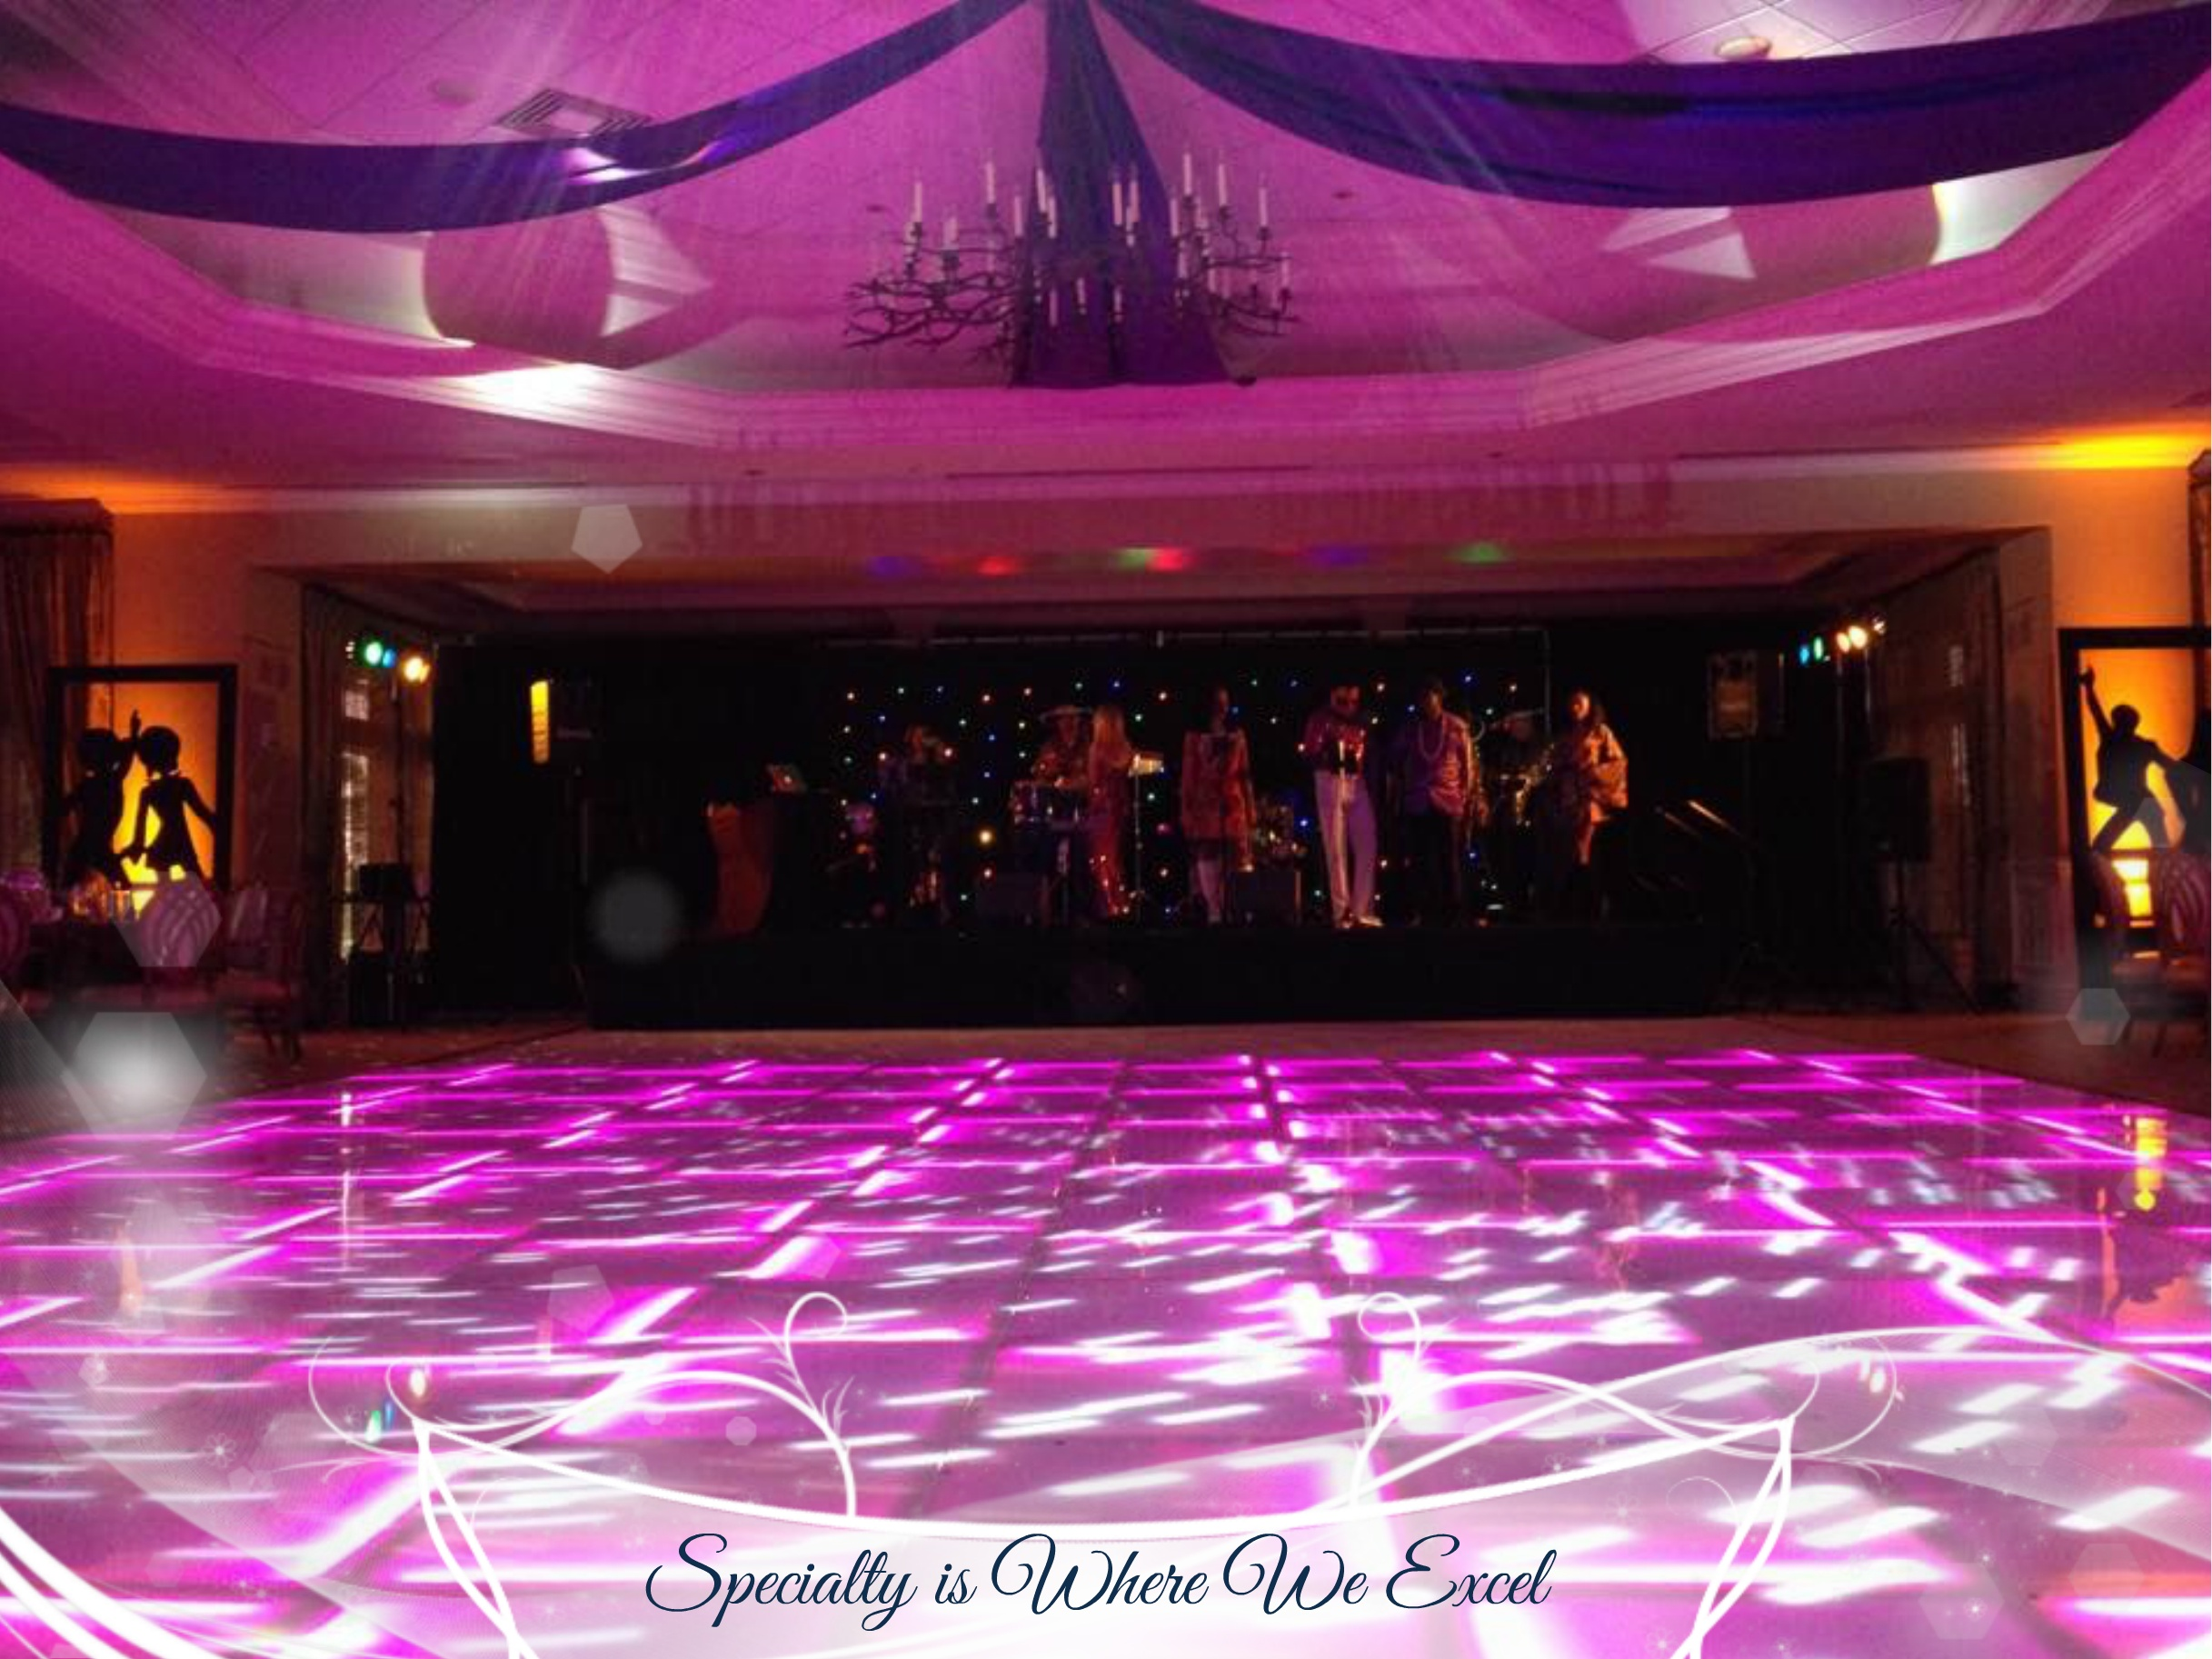 led dance floor & ceiling treatment